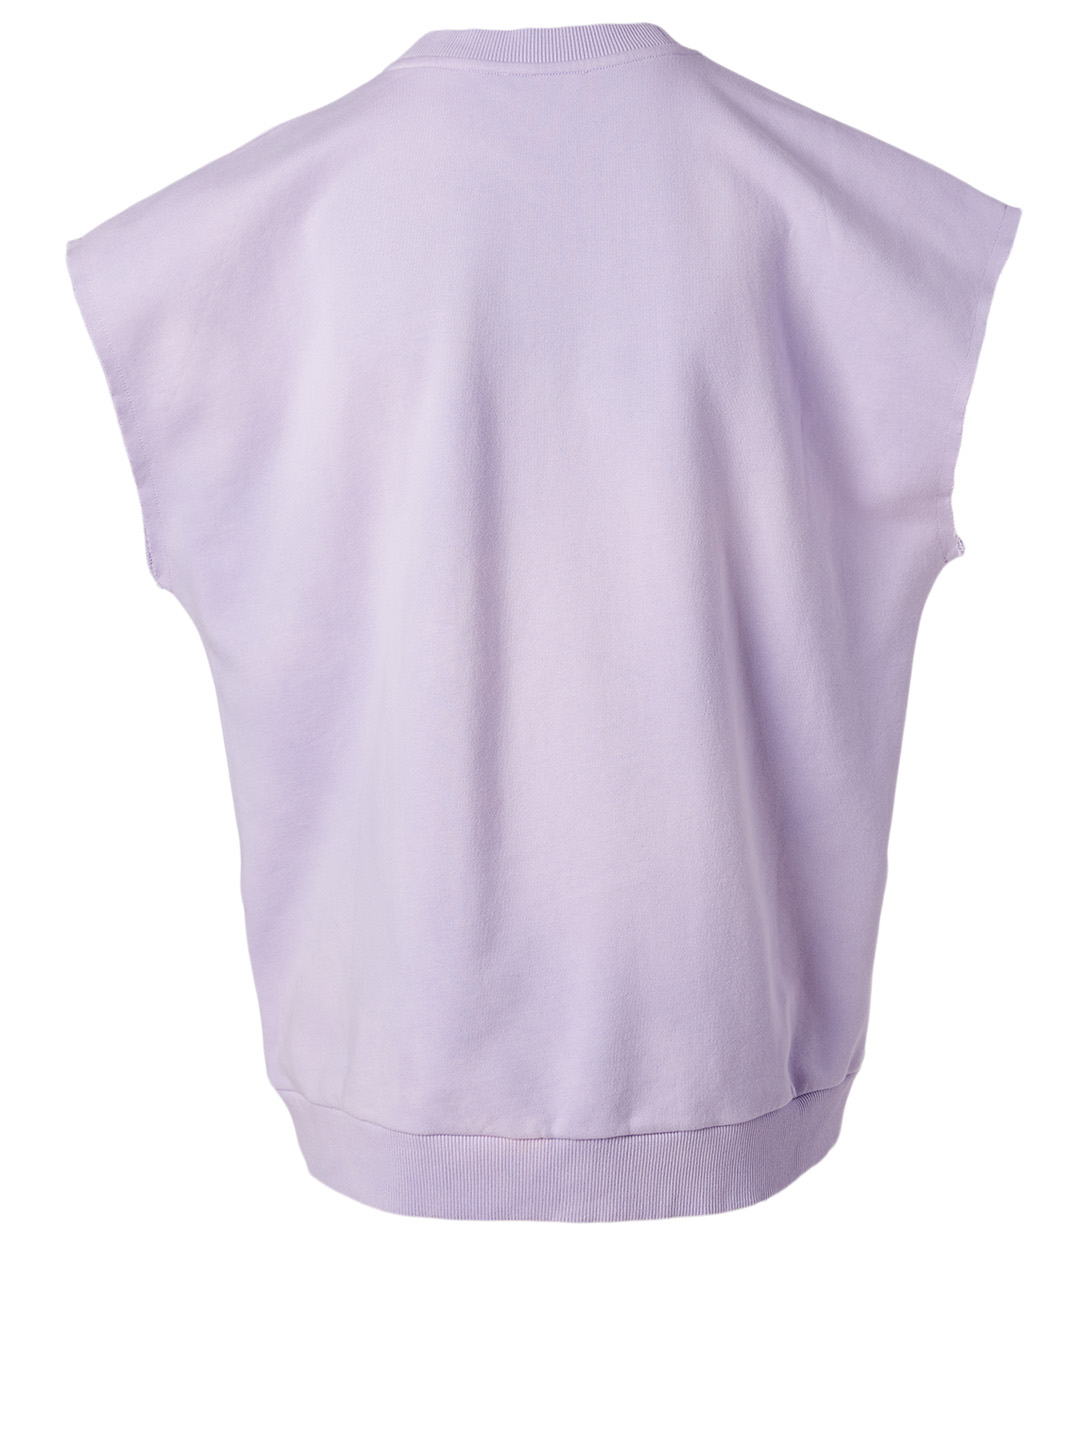 BALMAIN Sun-Bleached Cotton T-Shirt Women's Purple